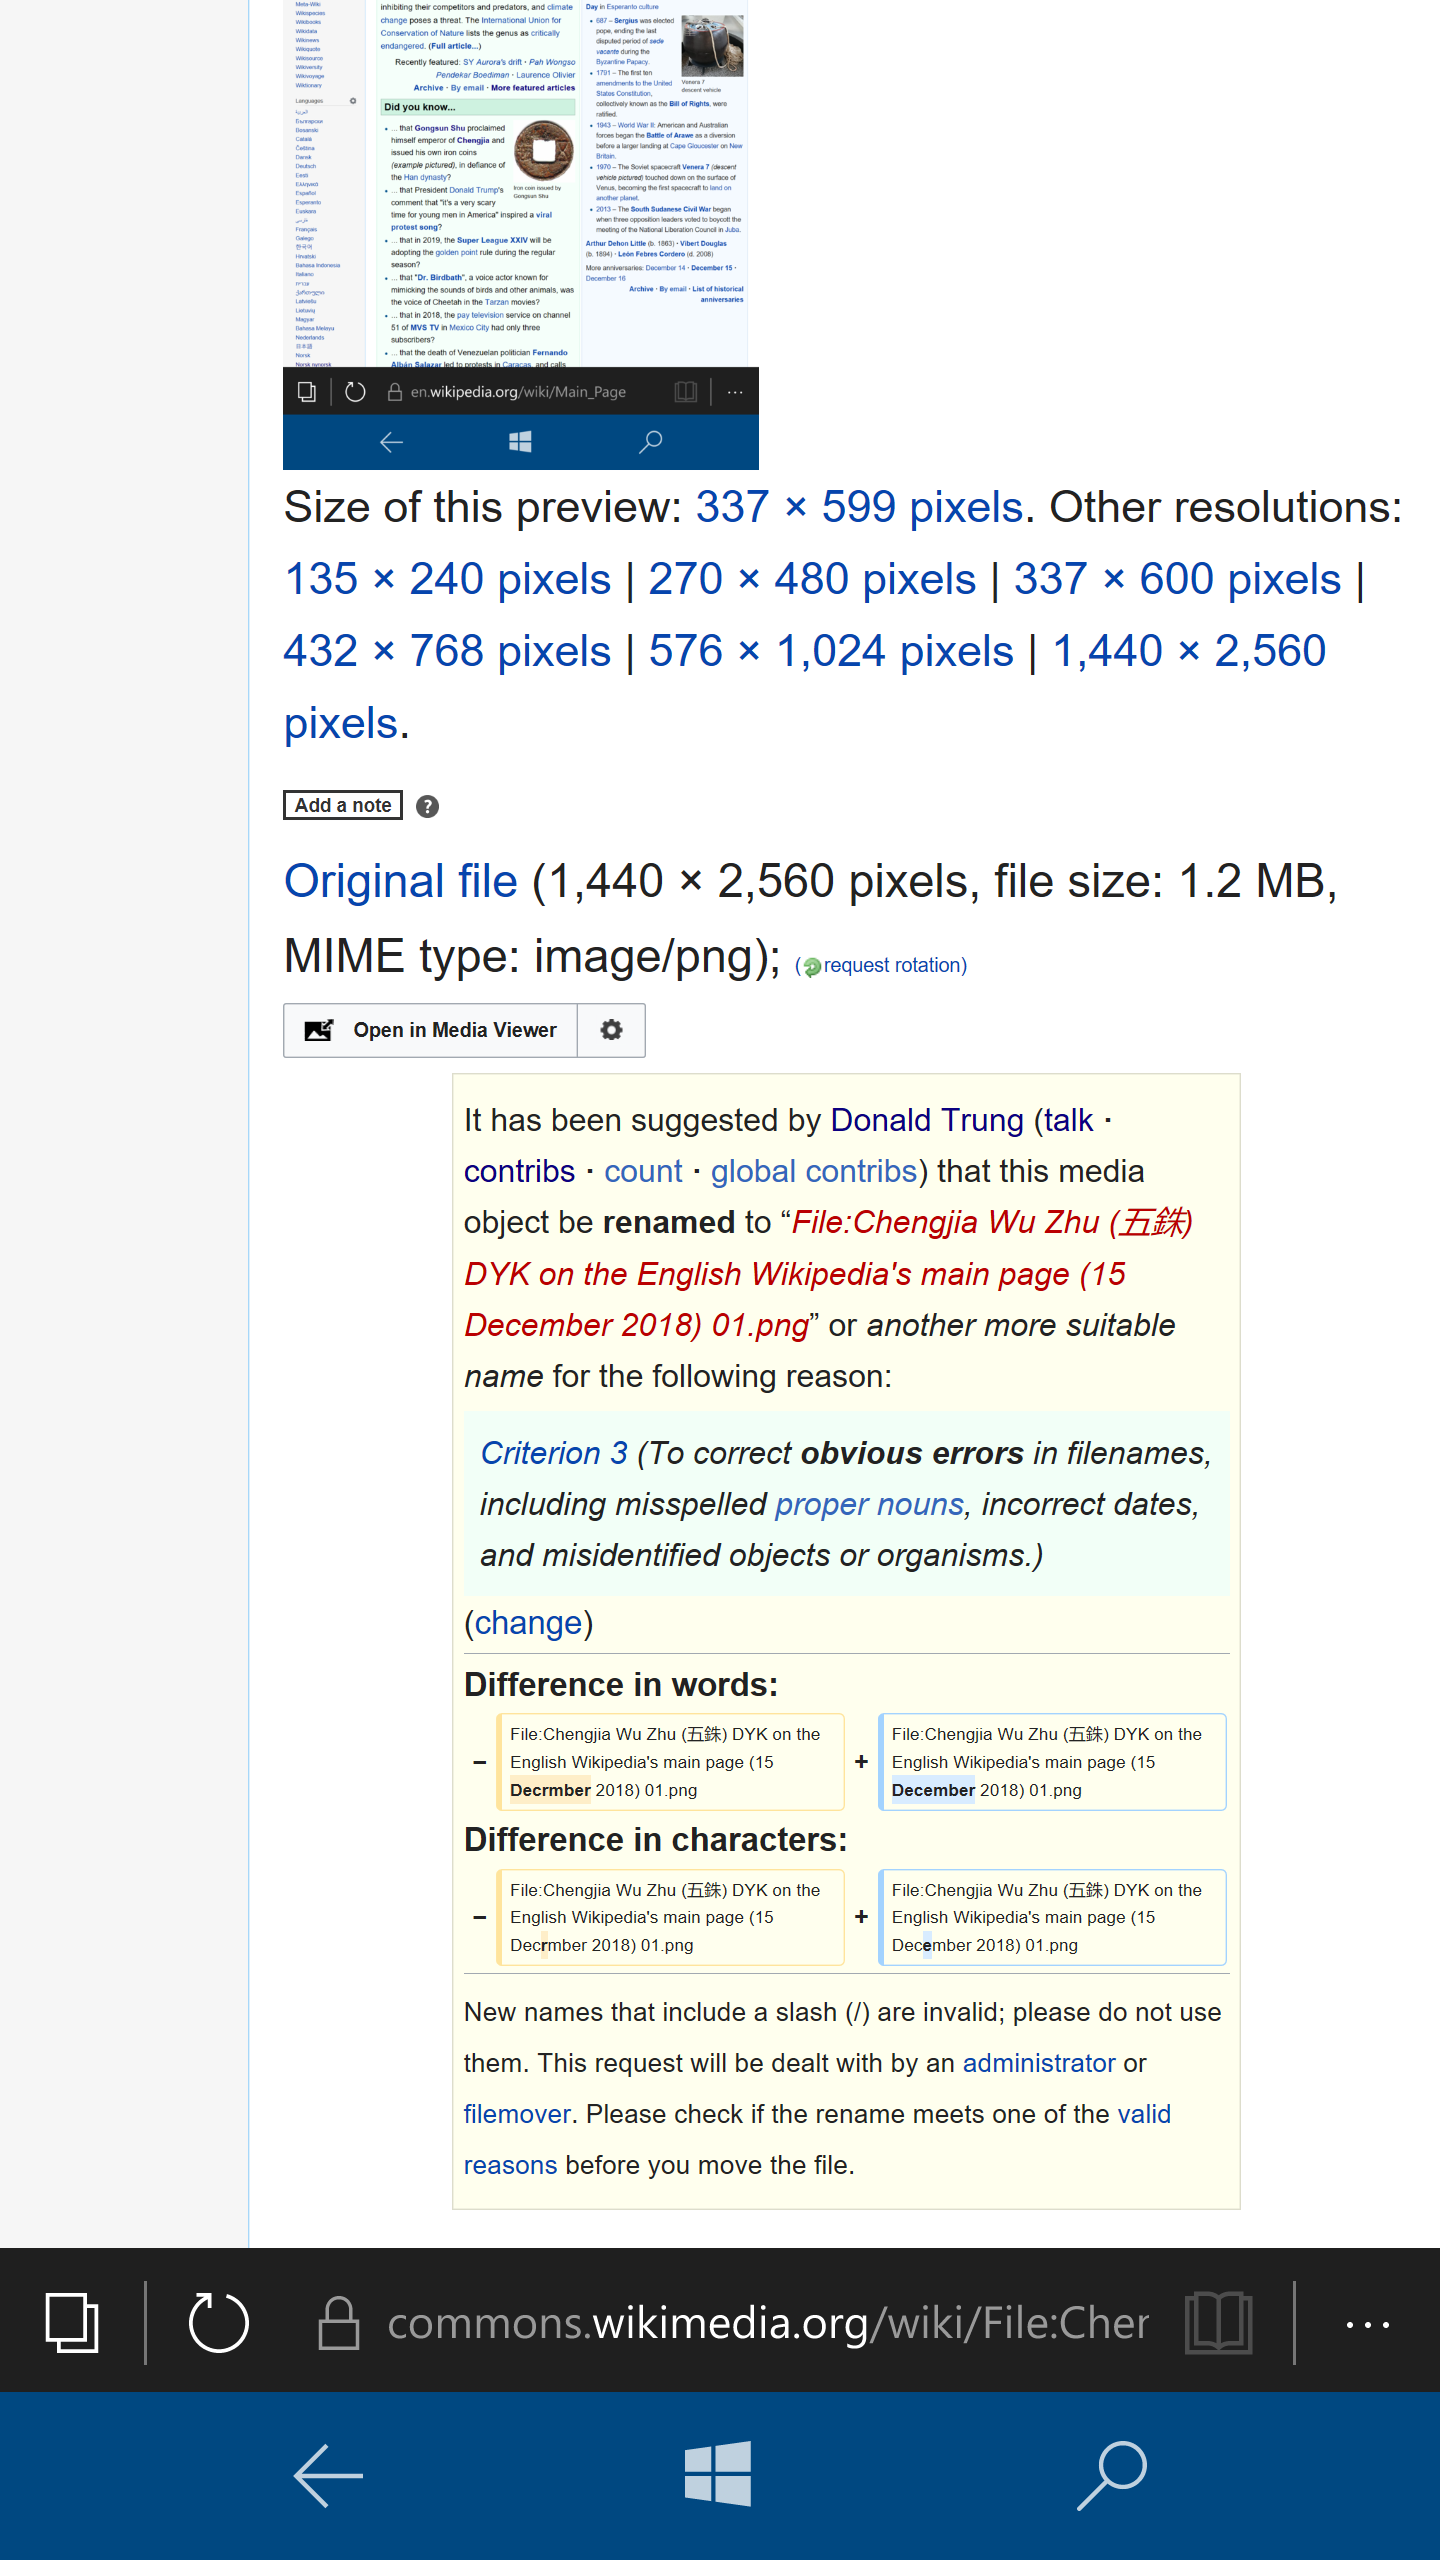 File:Rename request as viewed on a mobile browser (Microsoft